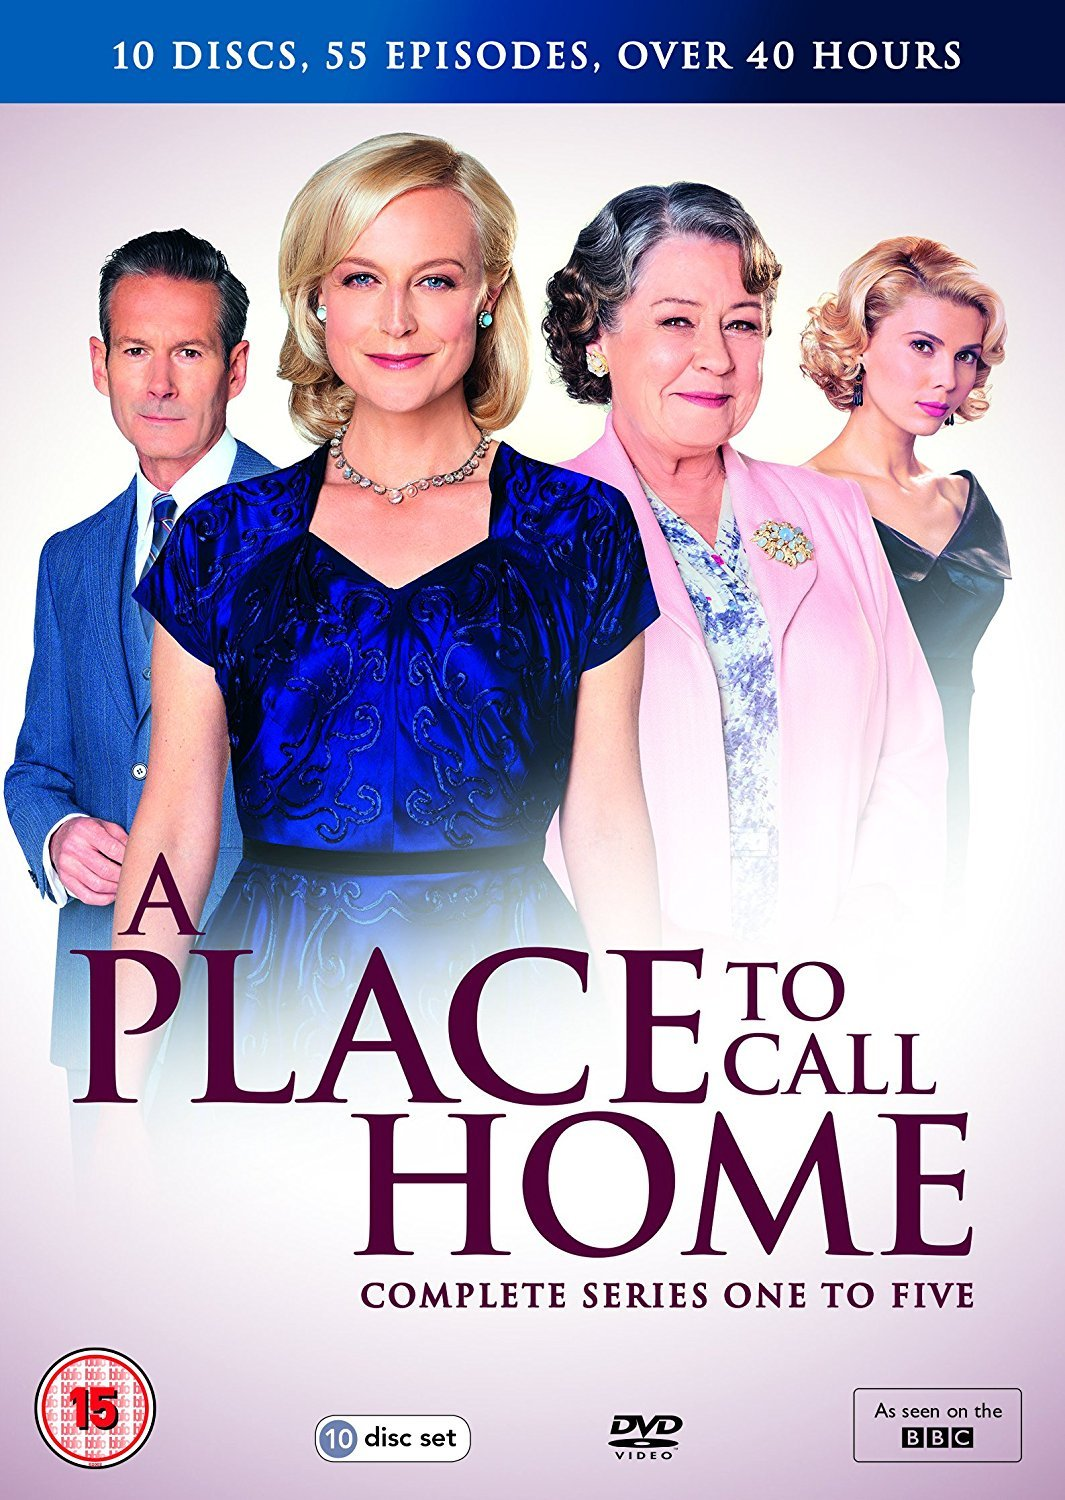 a place to call home by deborah smith reviews a place called home book A Place To Call Home: Complete Series 1-5 [DVD]: Amazon.co.uk: Marta  Dusseldorp, Noni Hazlehurst, Brett Climo, Craig Hall, David Berry, Abby  Earl, ...